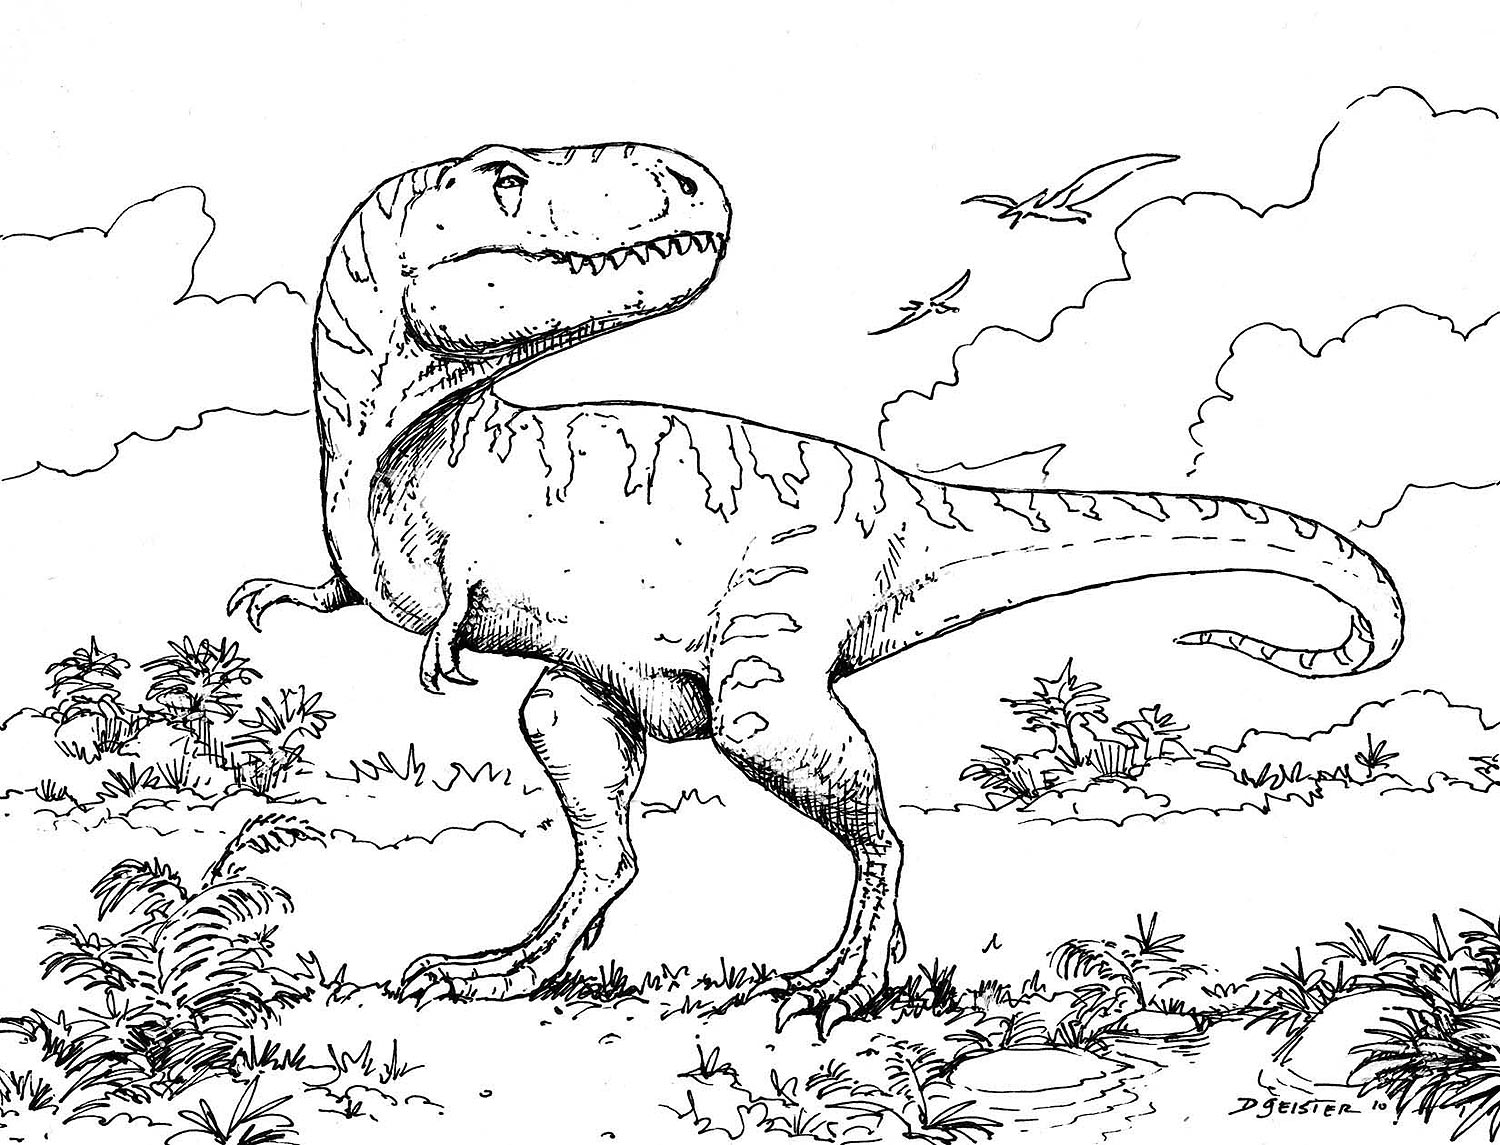 dinsaur coloring pages - photo#5